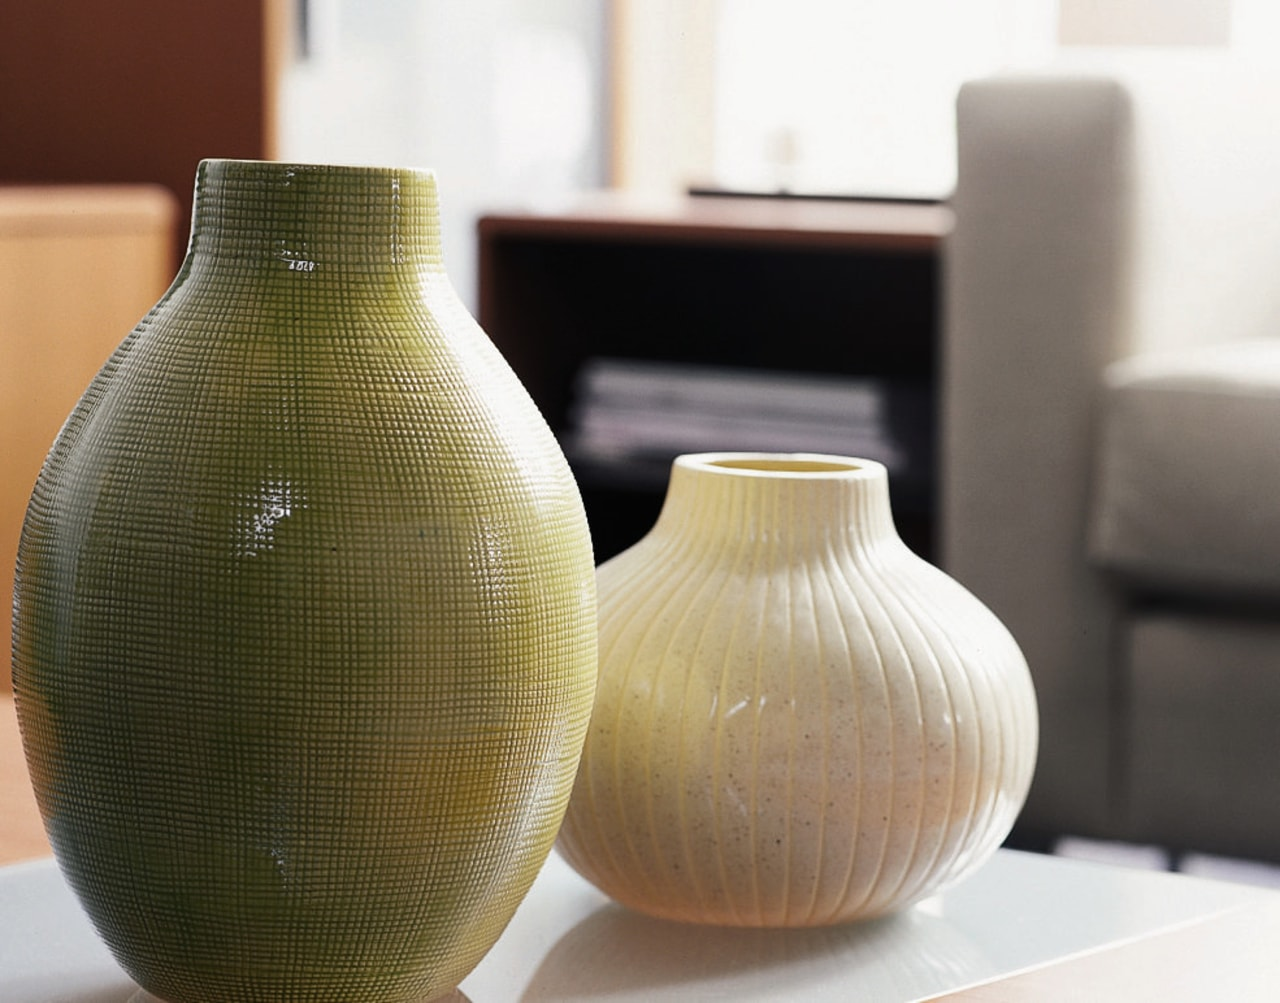 View of the vase artifact, ceramic, pottery, product design, vase, brown, white